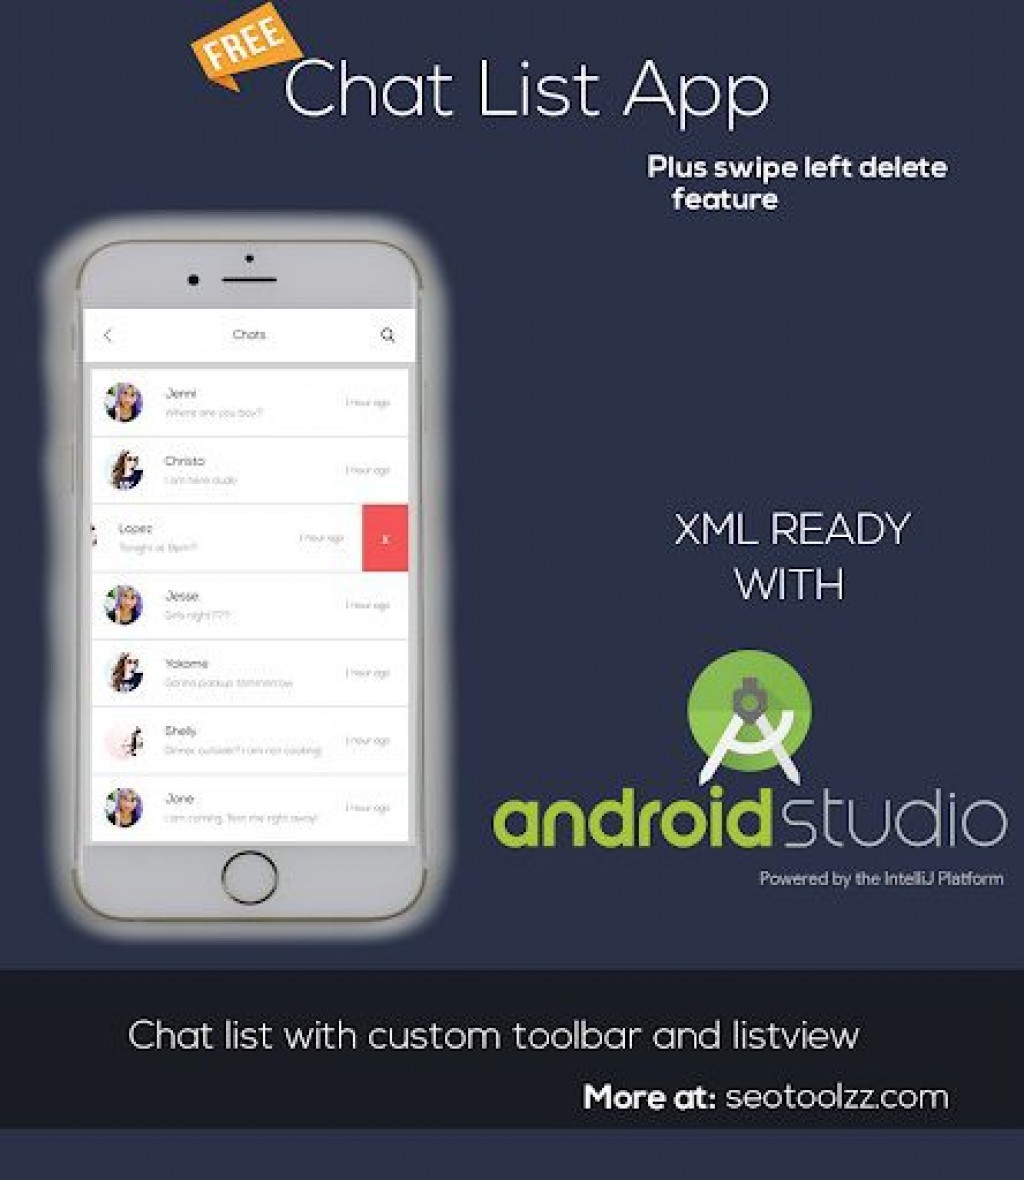 009 Rare Android App Design Template High Def  Free Sketch UiLarge